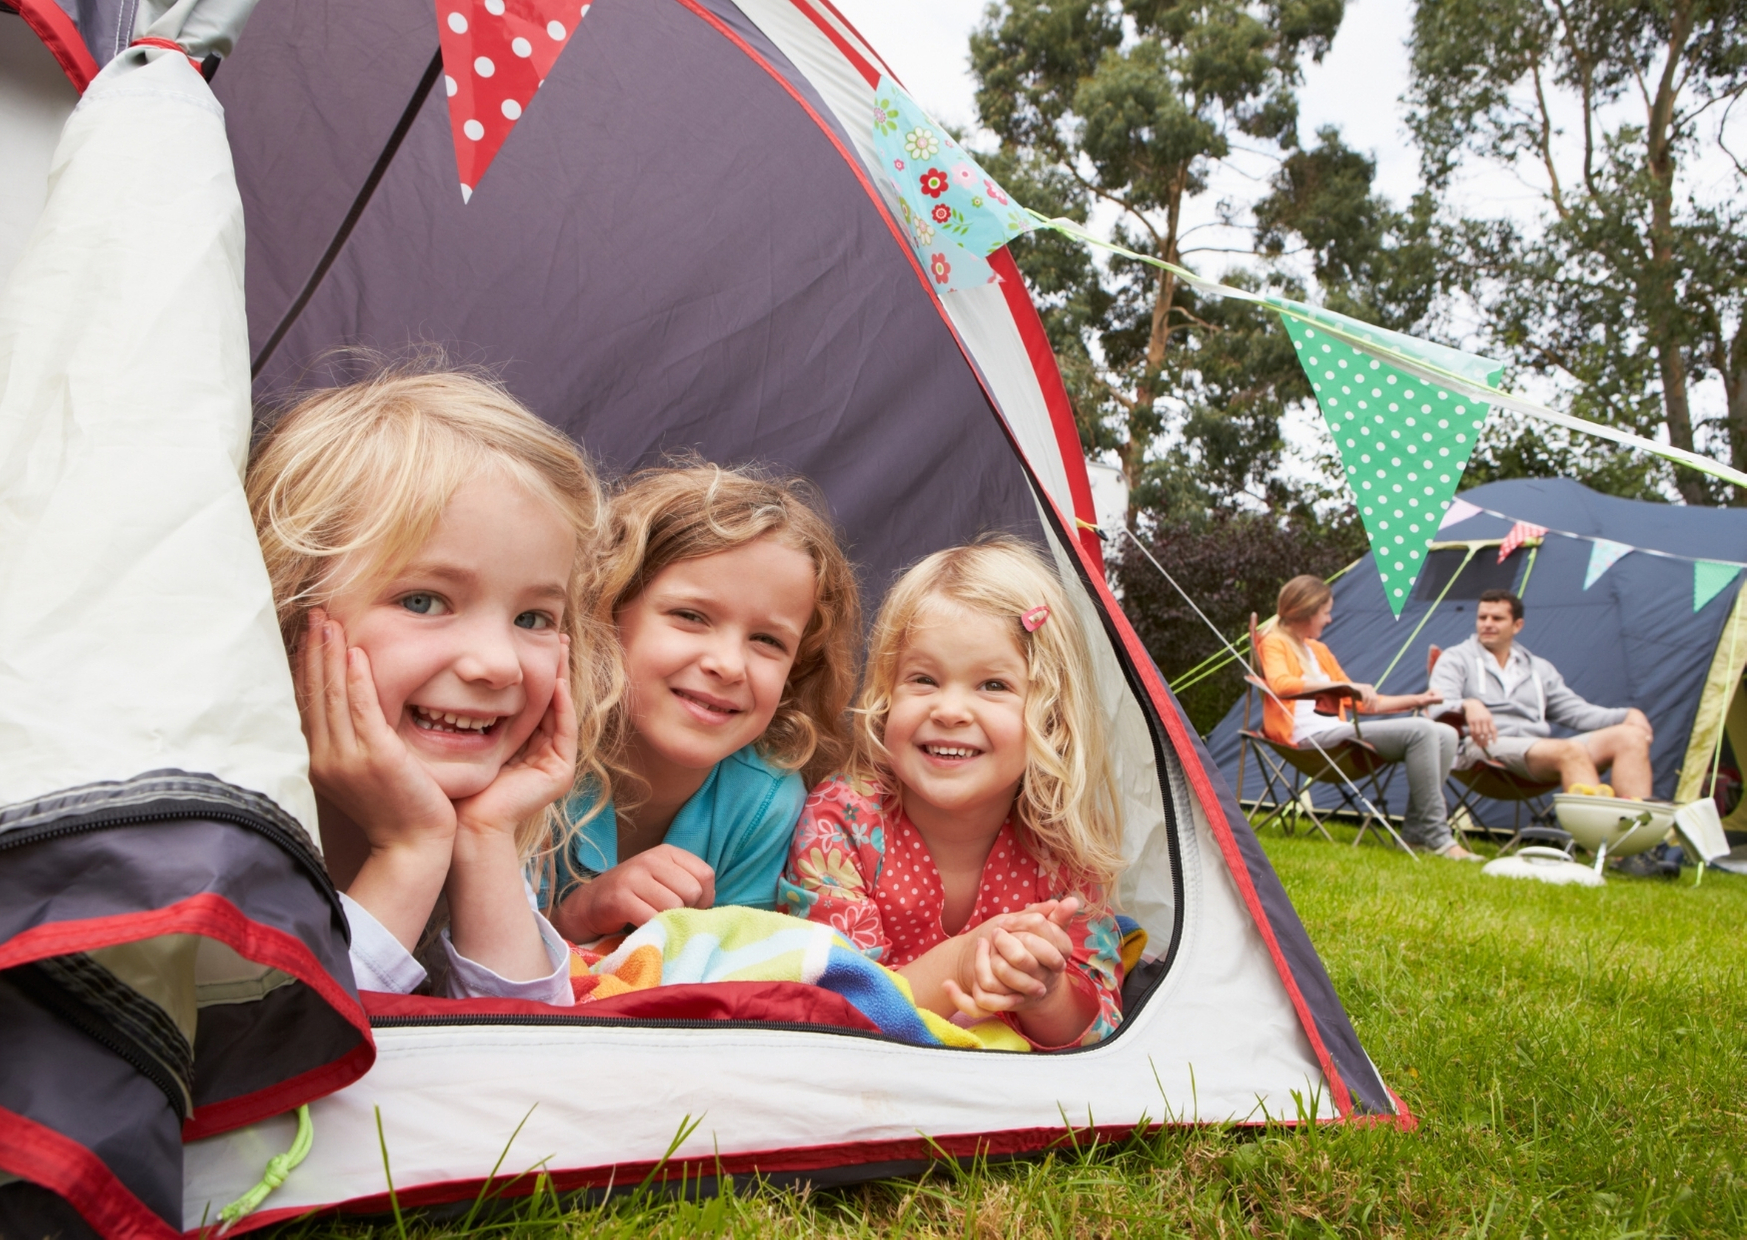 – Pitch your tent and take part in the Great Indoor/Outdoor Spring camp for your local hospice.